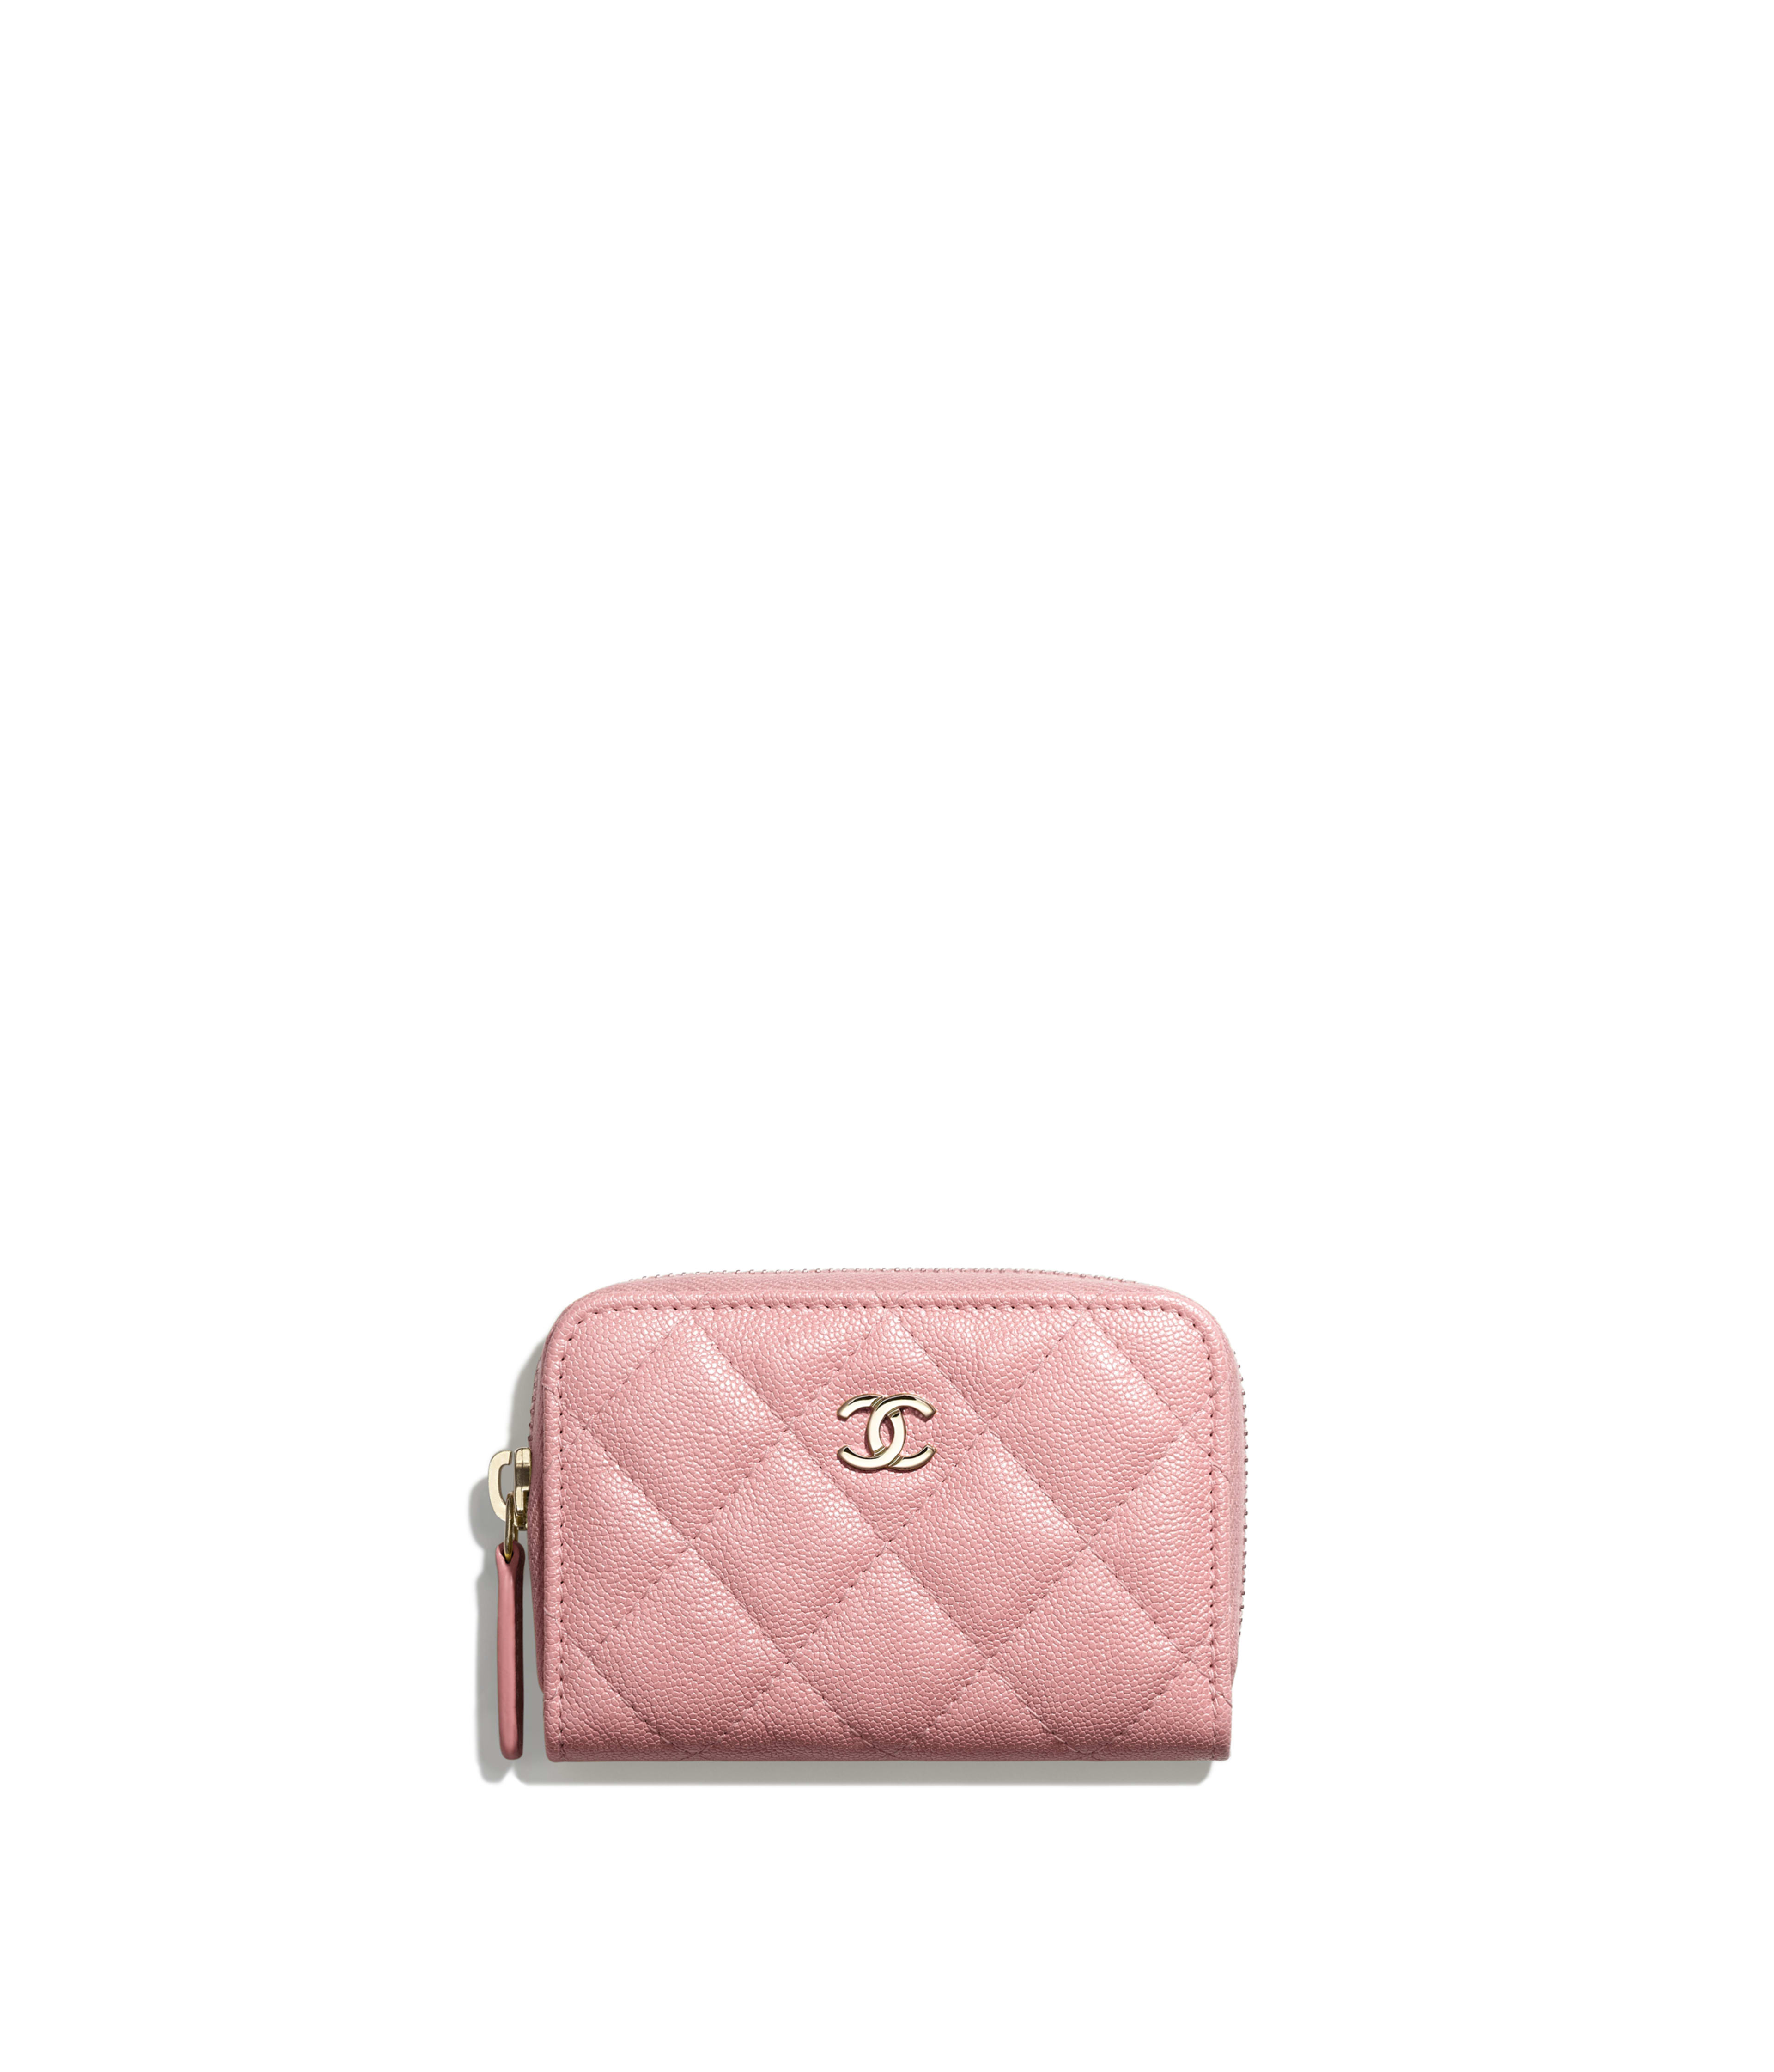 fce2b59bf7ef Classic Zipped Card Holder Iridescent Grained Calfskin & Gold-Tone Metal,  Pink Ref. A84511B00357N0897